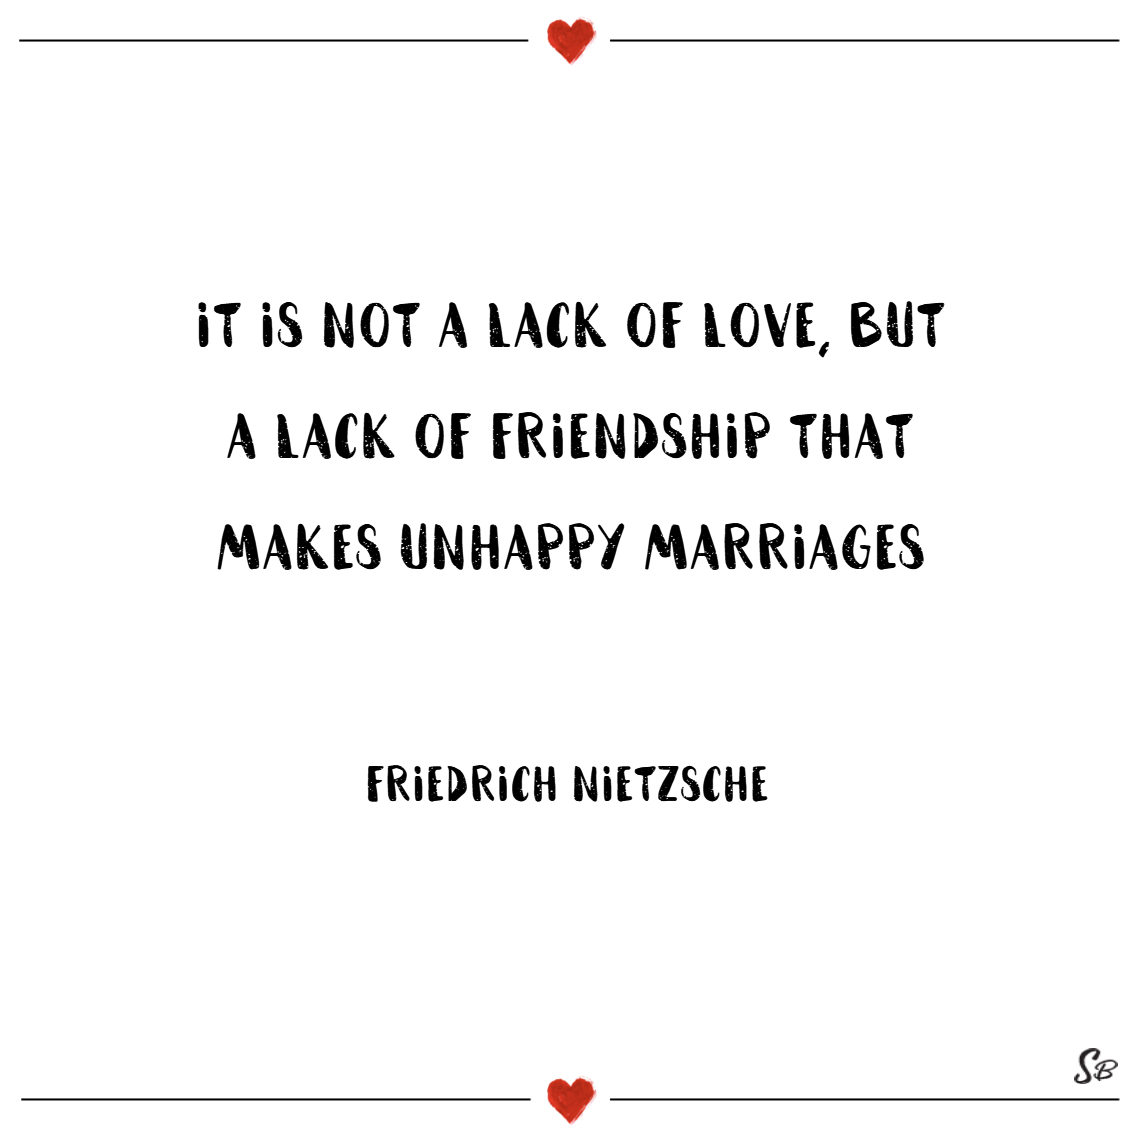 It is not a lack of love, but a lack of friendship